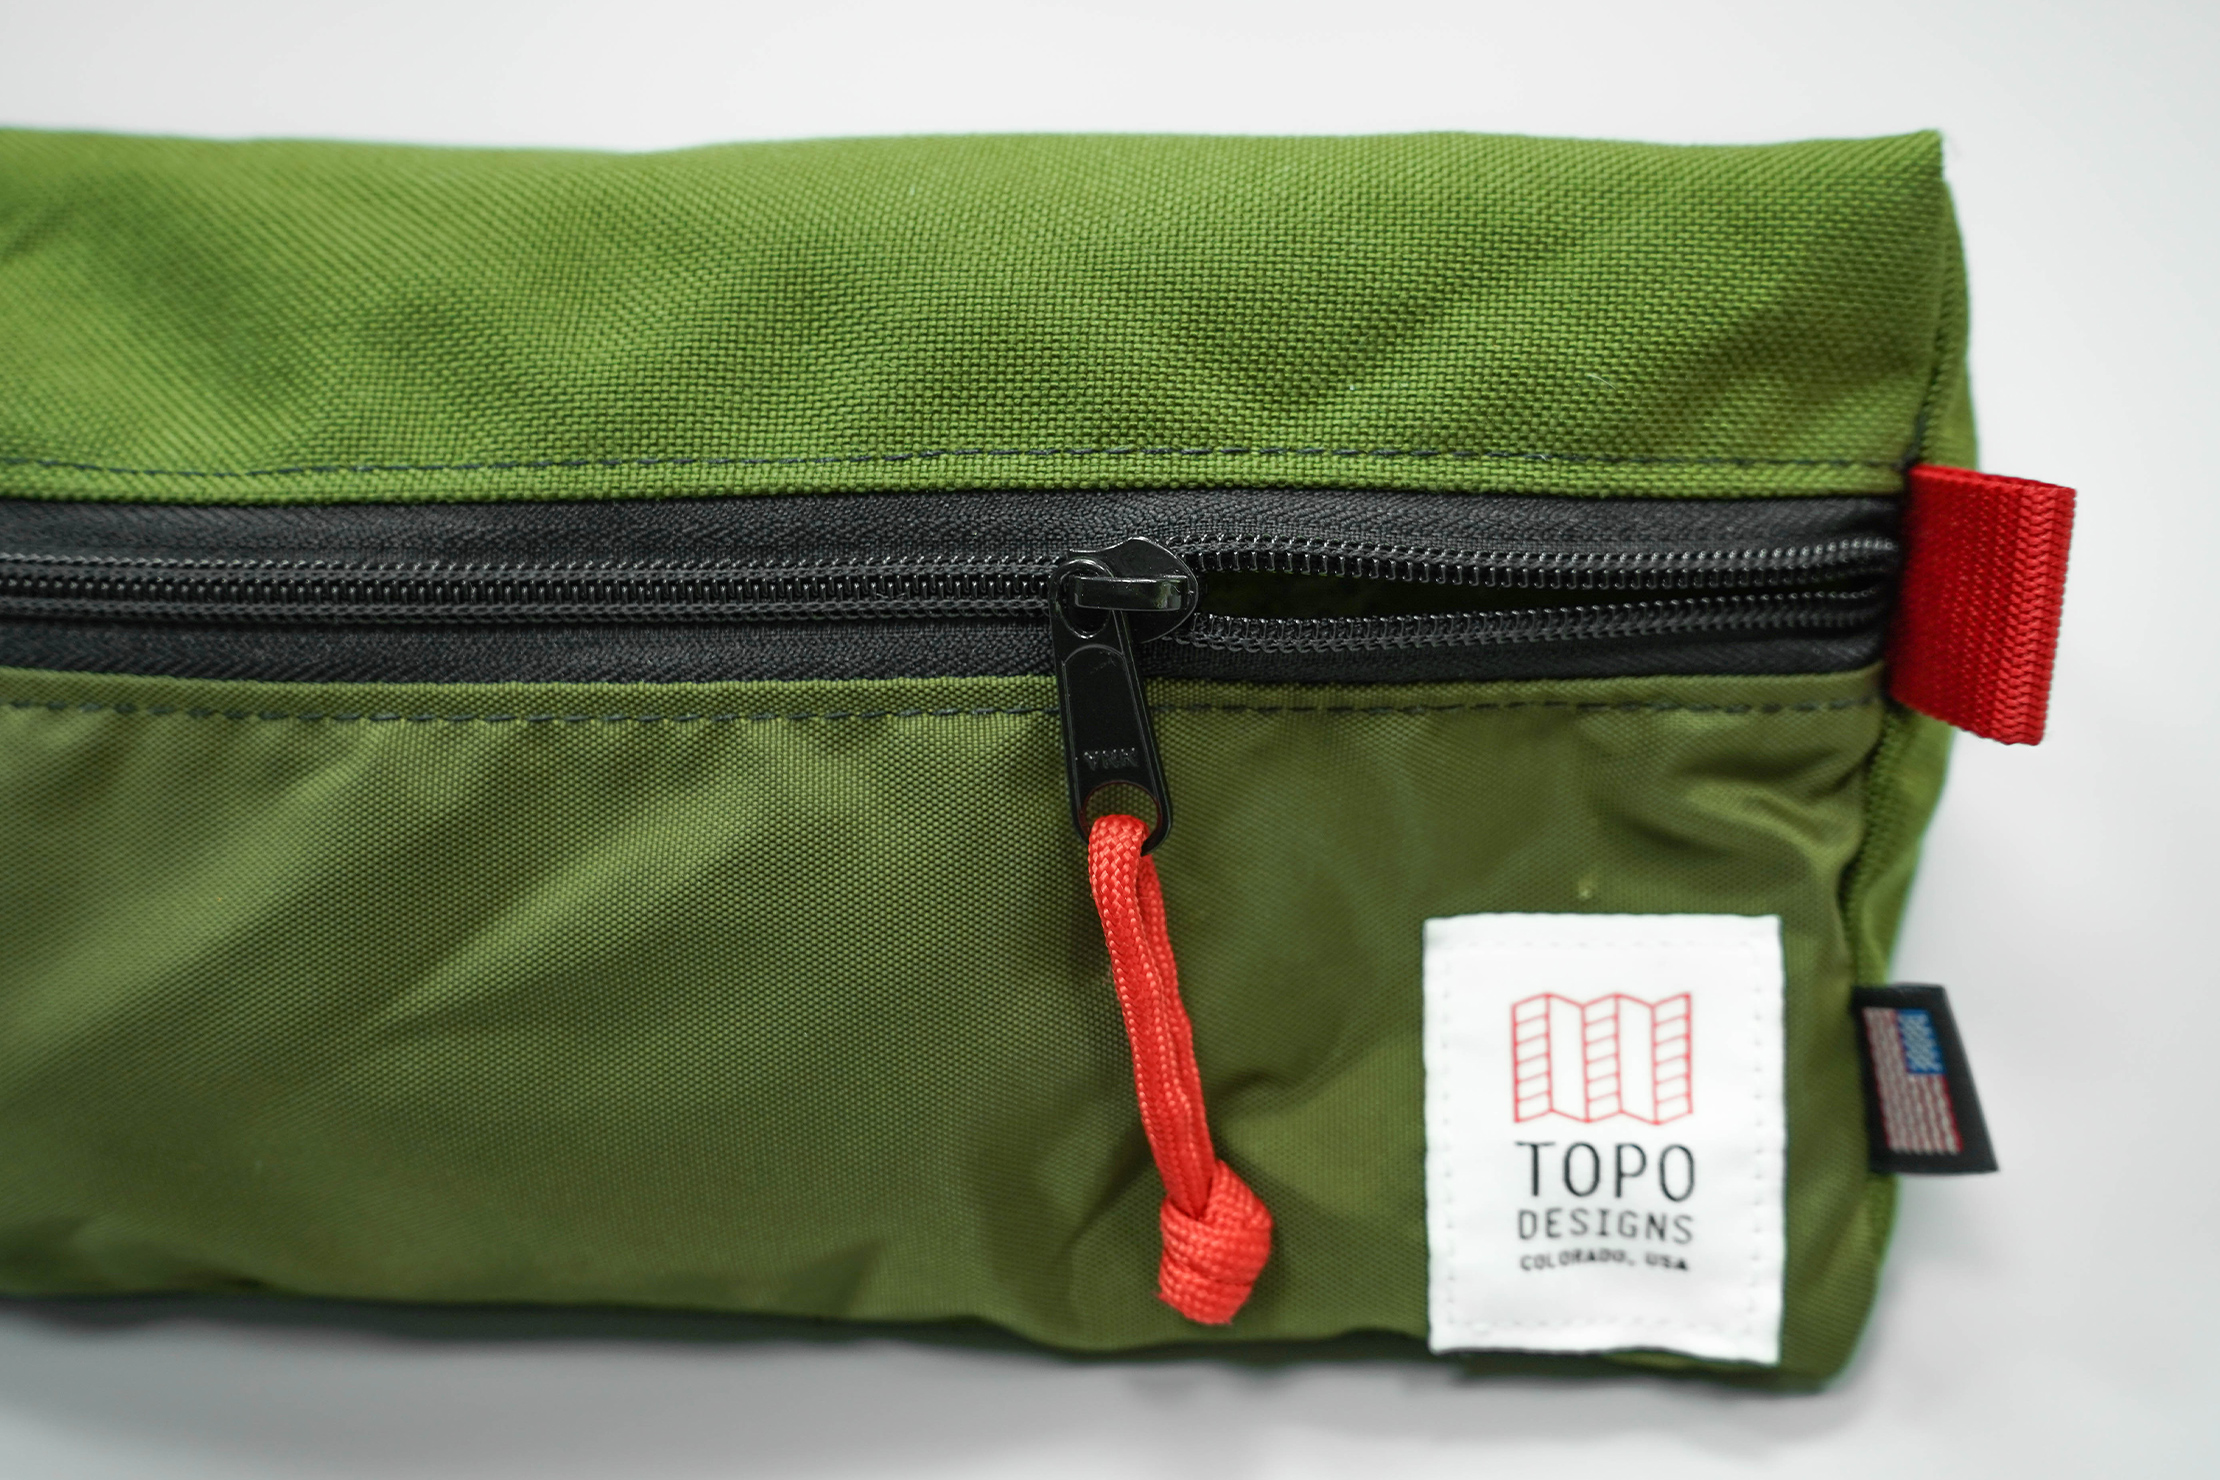 Topo Designs Dopp Kit Zipper